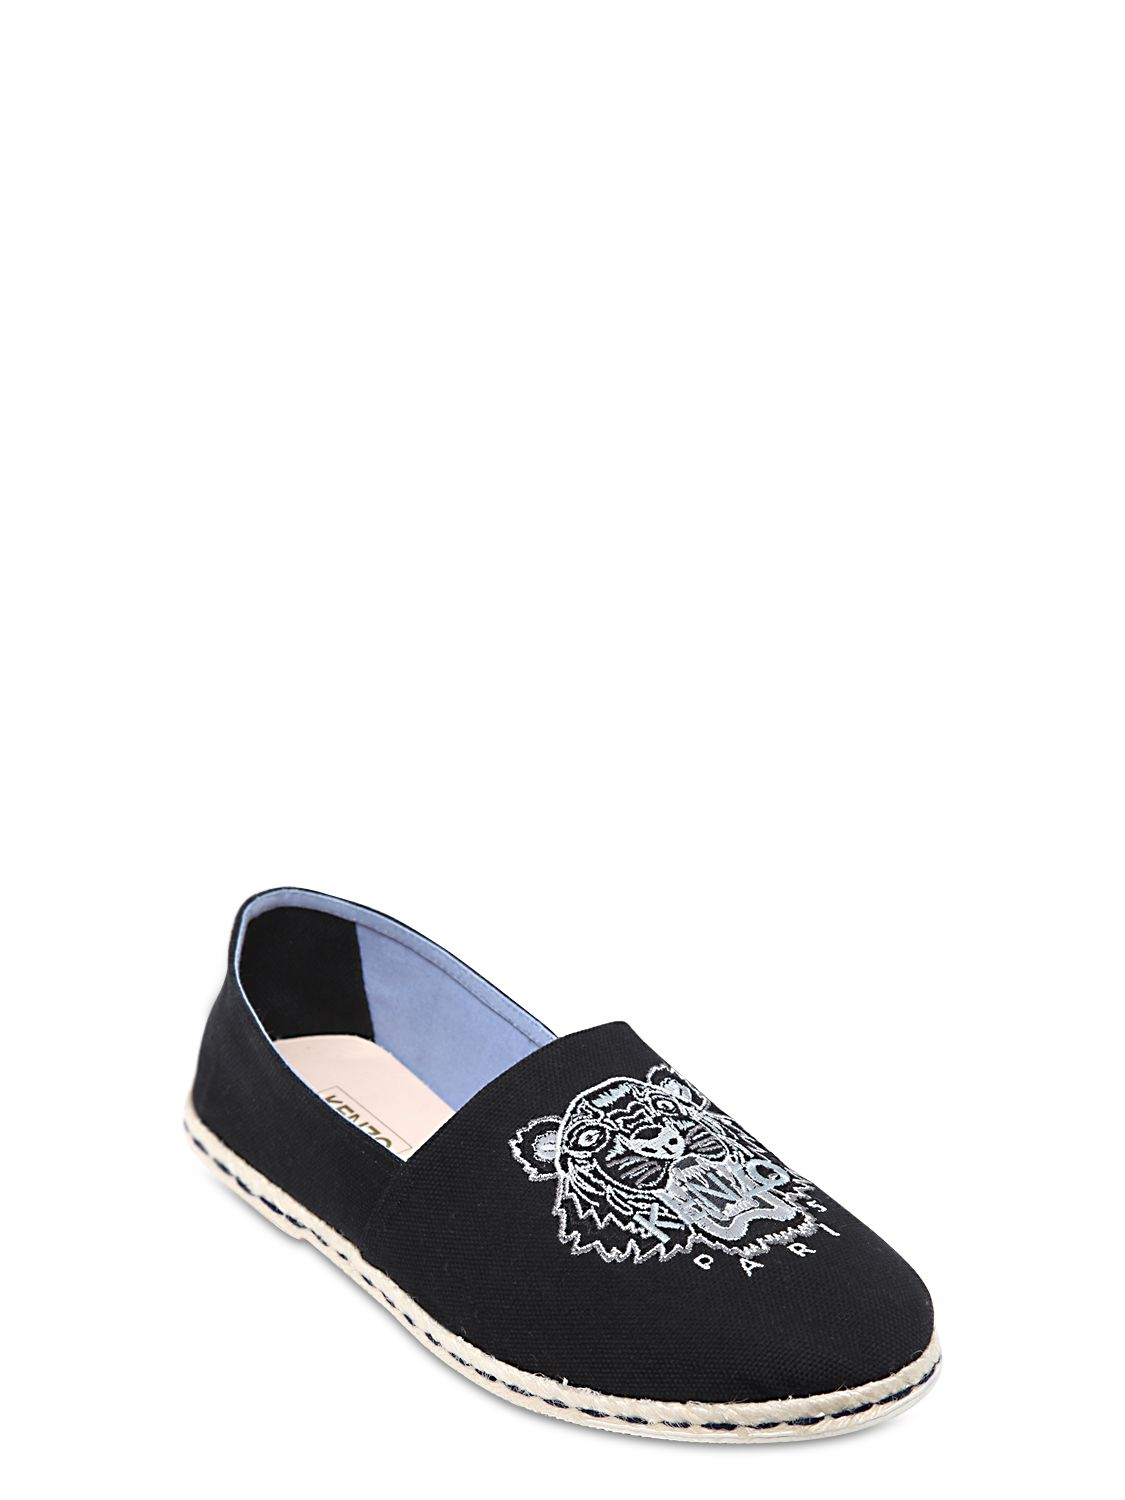 226aaf91d9 KENZO Black Embroidered Cotton Canvas Slip On Shoes for men